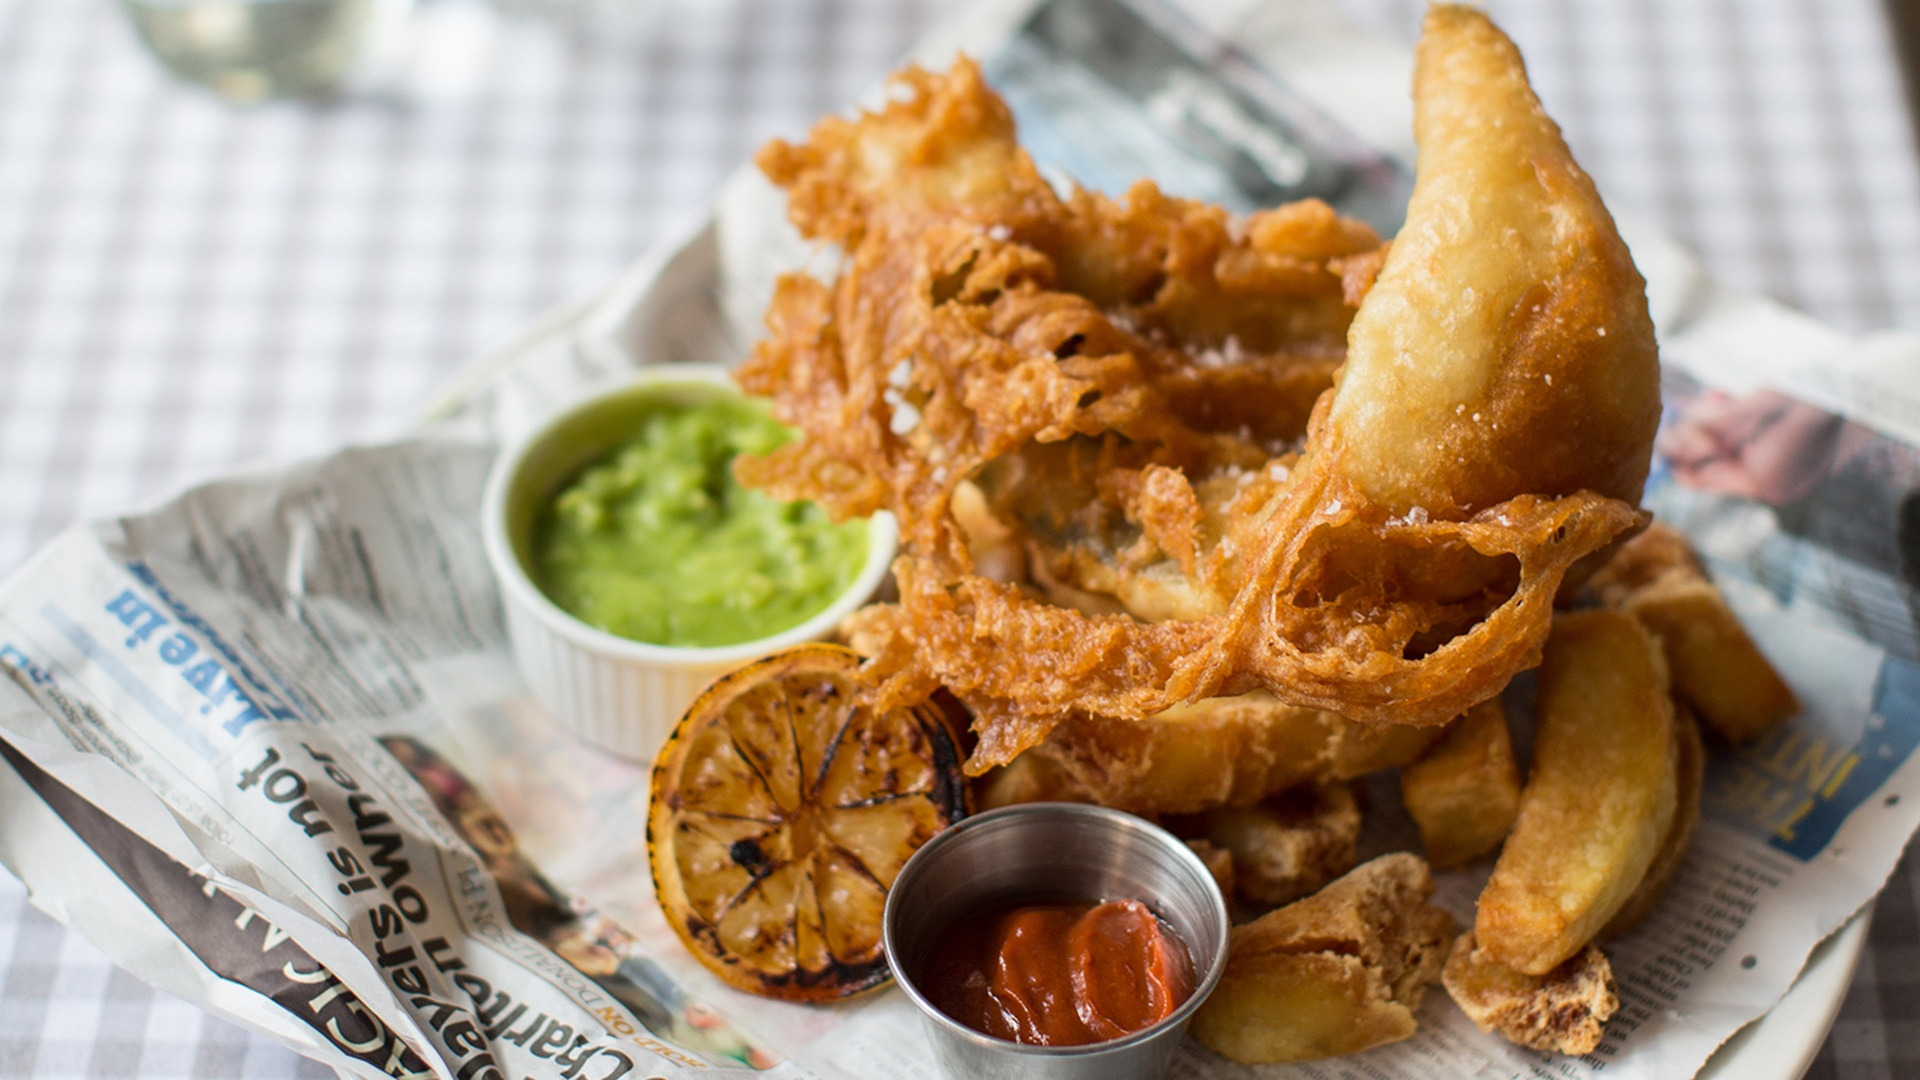 London's best fish and chips: Bonnie Gull